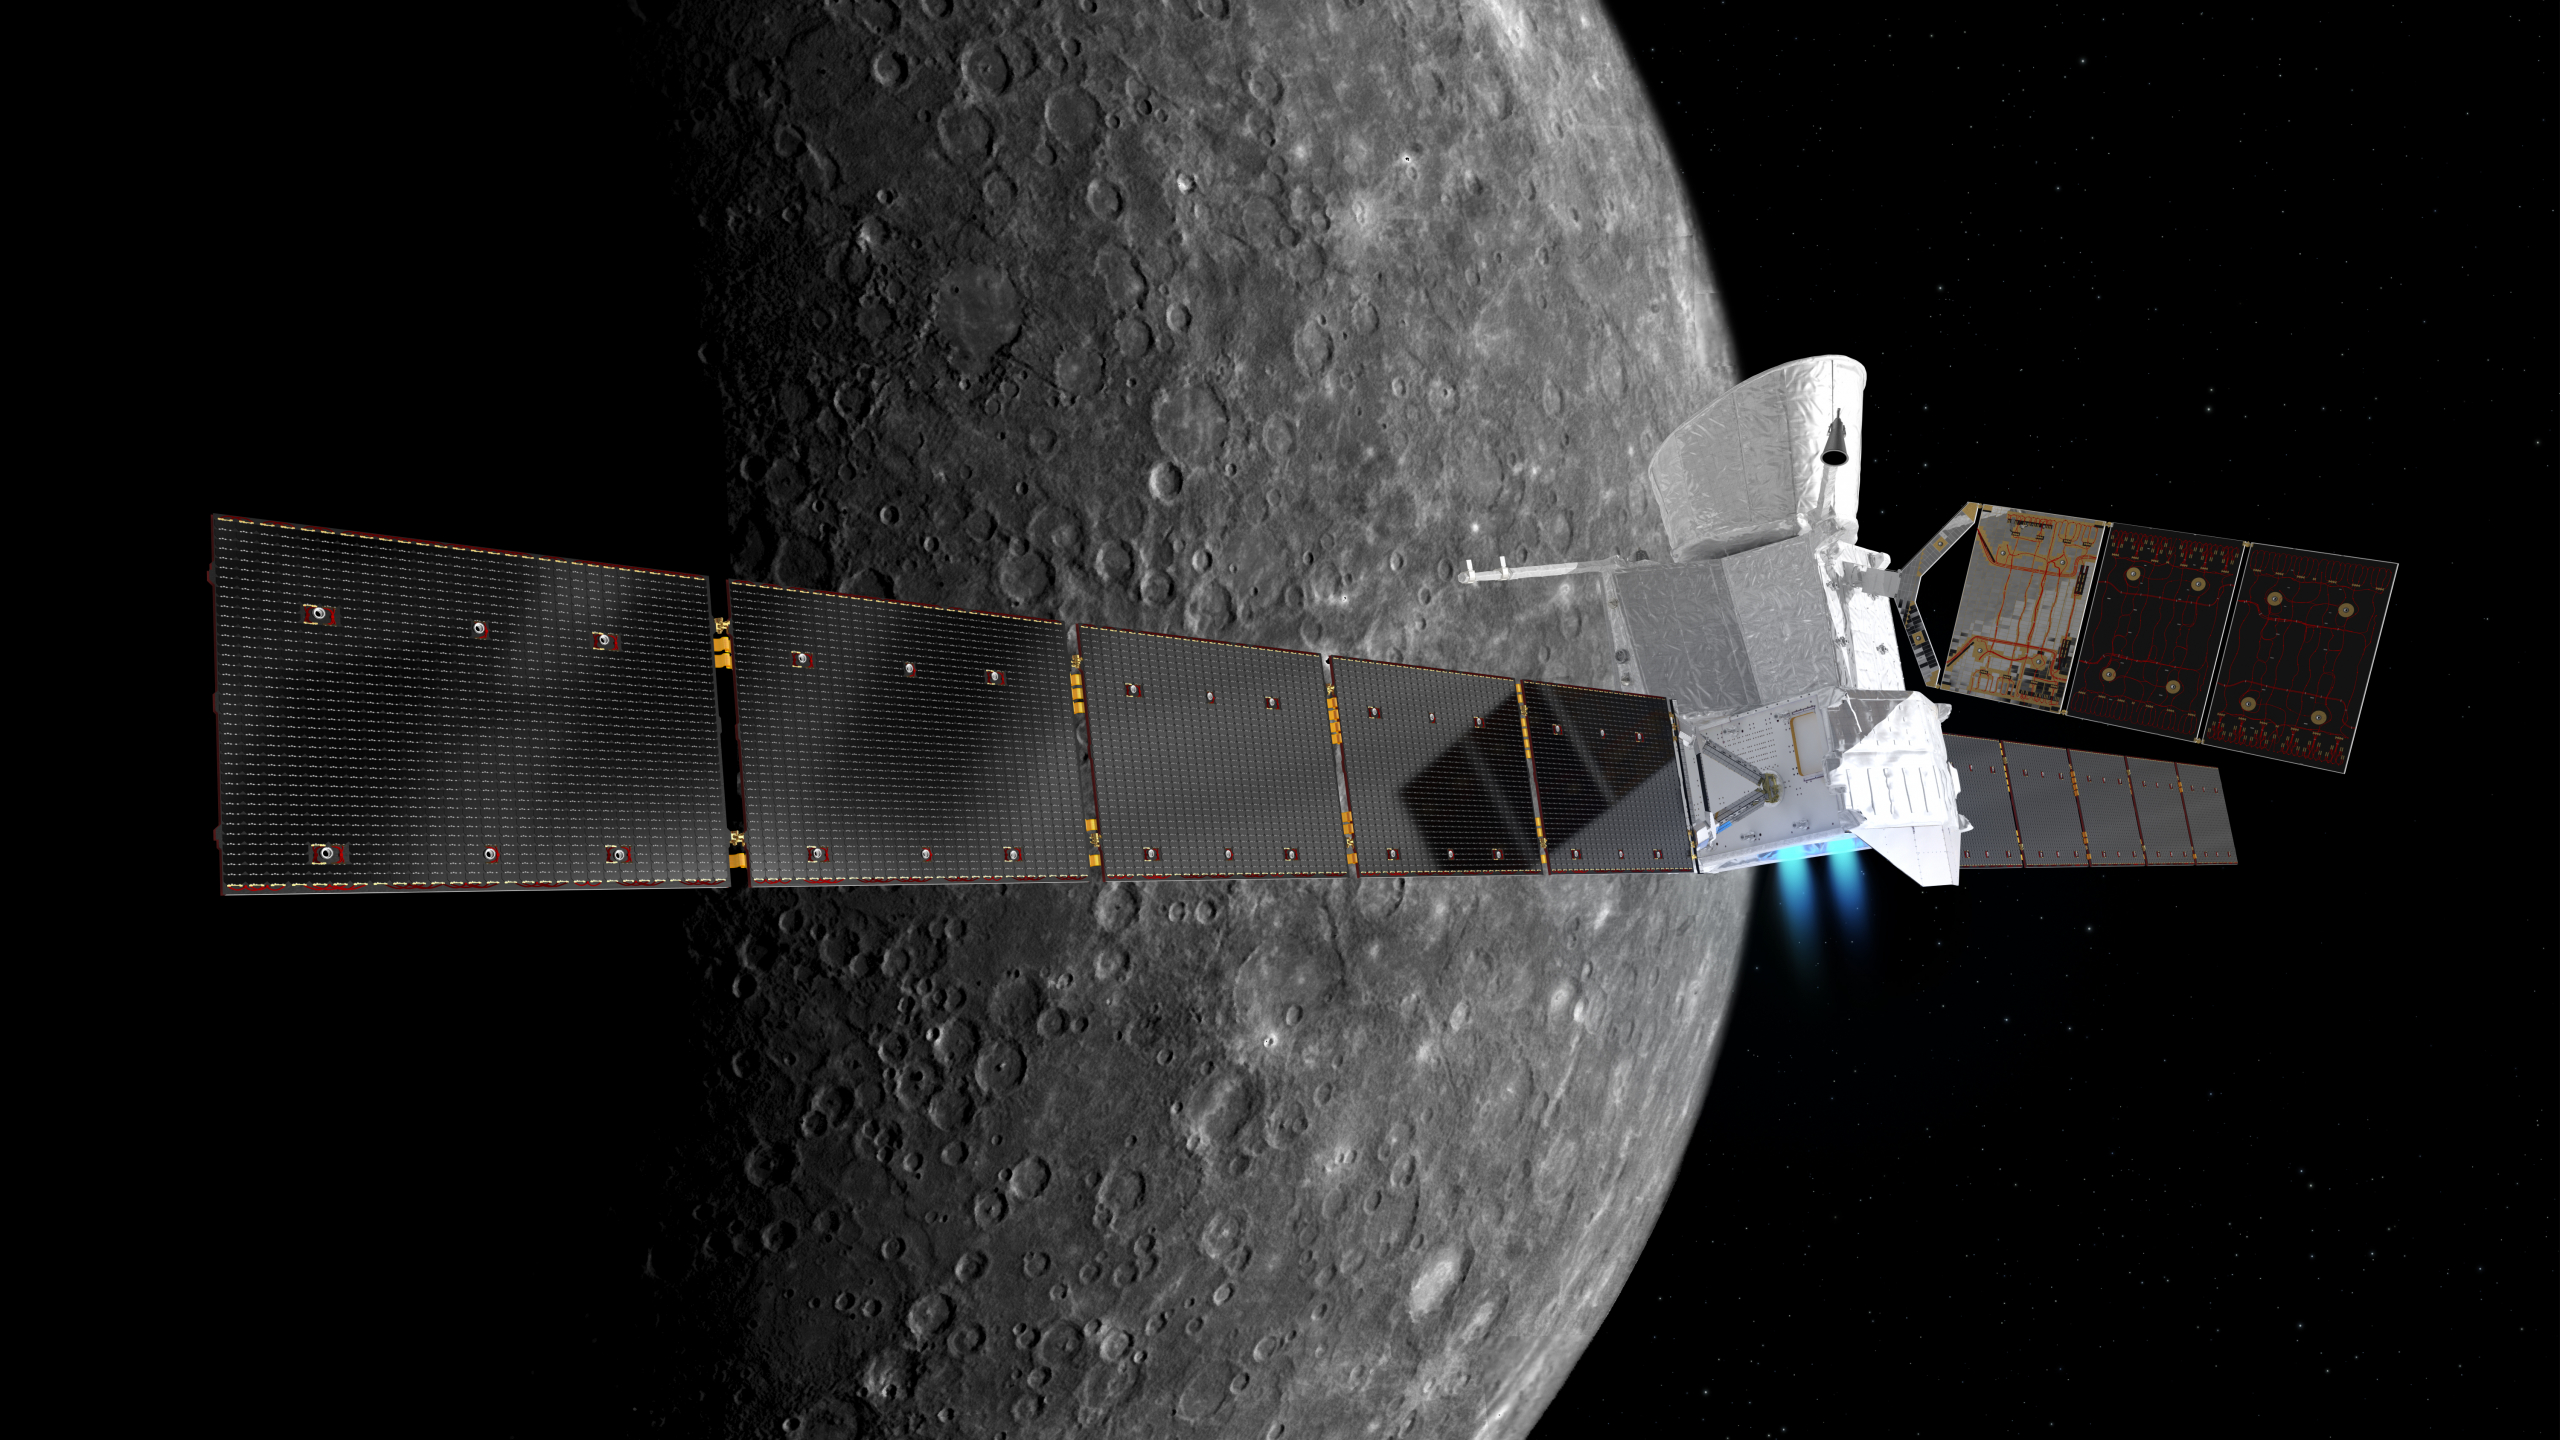 BepiColombo completes first Mercury flyby, science provides insight into planet's unique environment - NASASpaceFlight.com - NASASpaceflight.com